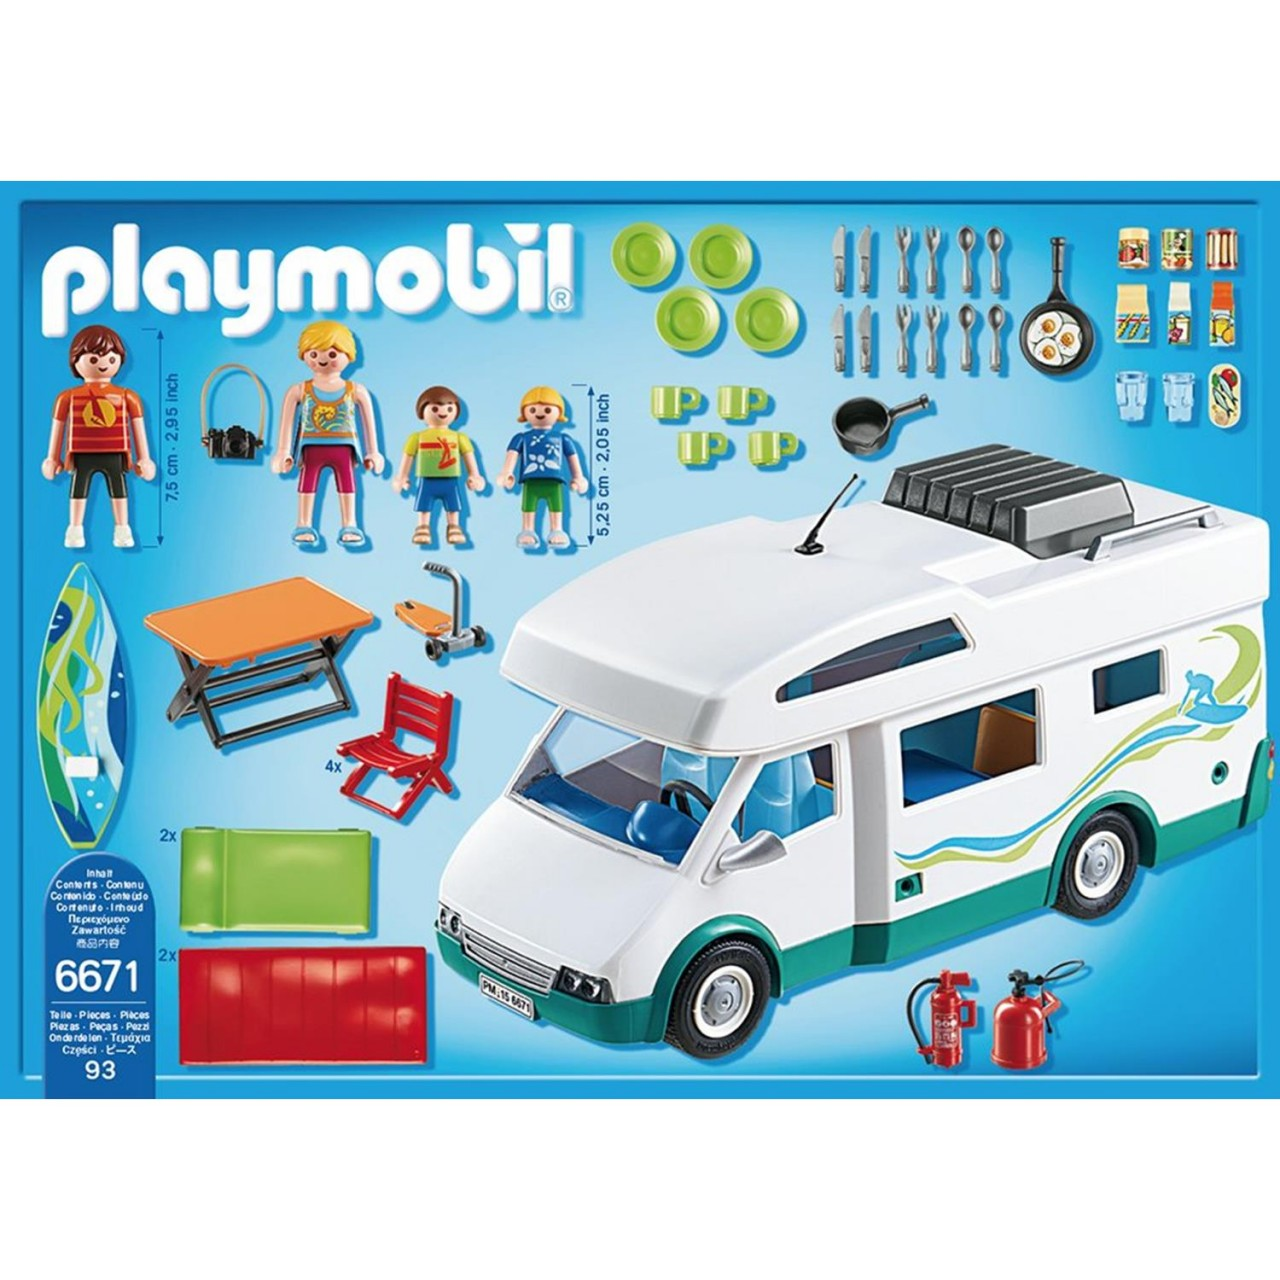 Playmobil 6671 Familien-Wohnmobil